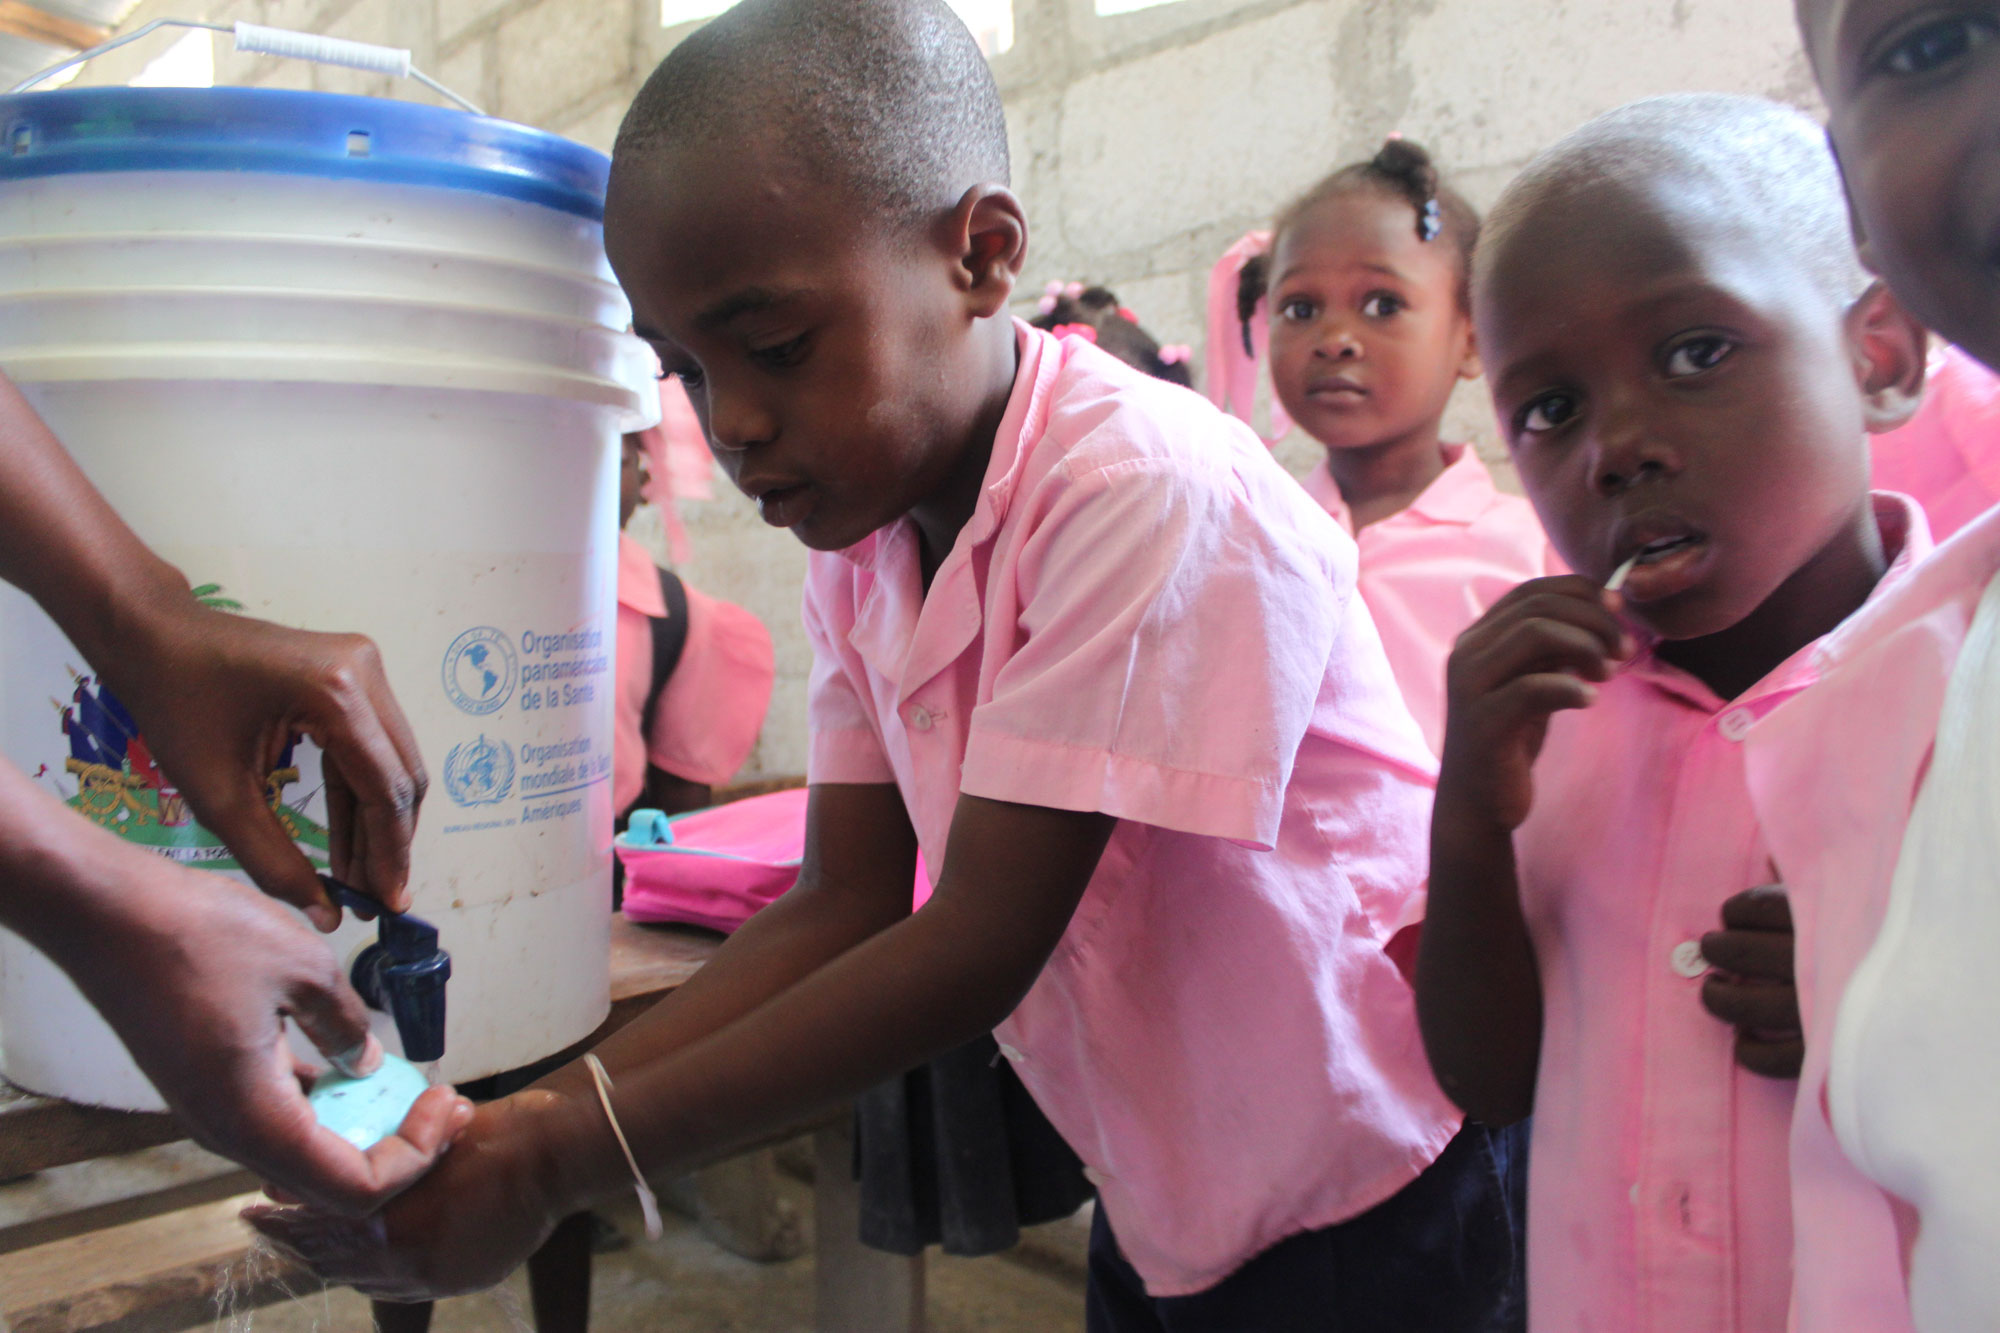 A group of Haitian children learn how to properly wash their hands in an effort to raise awareness about cholera prevention. UN Photo/ Logan Abassi